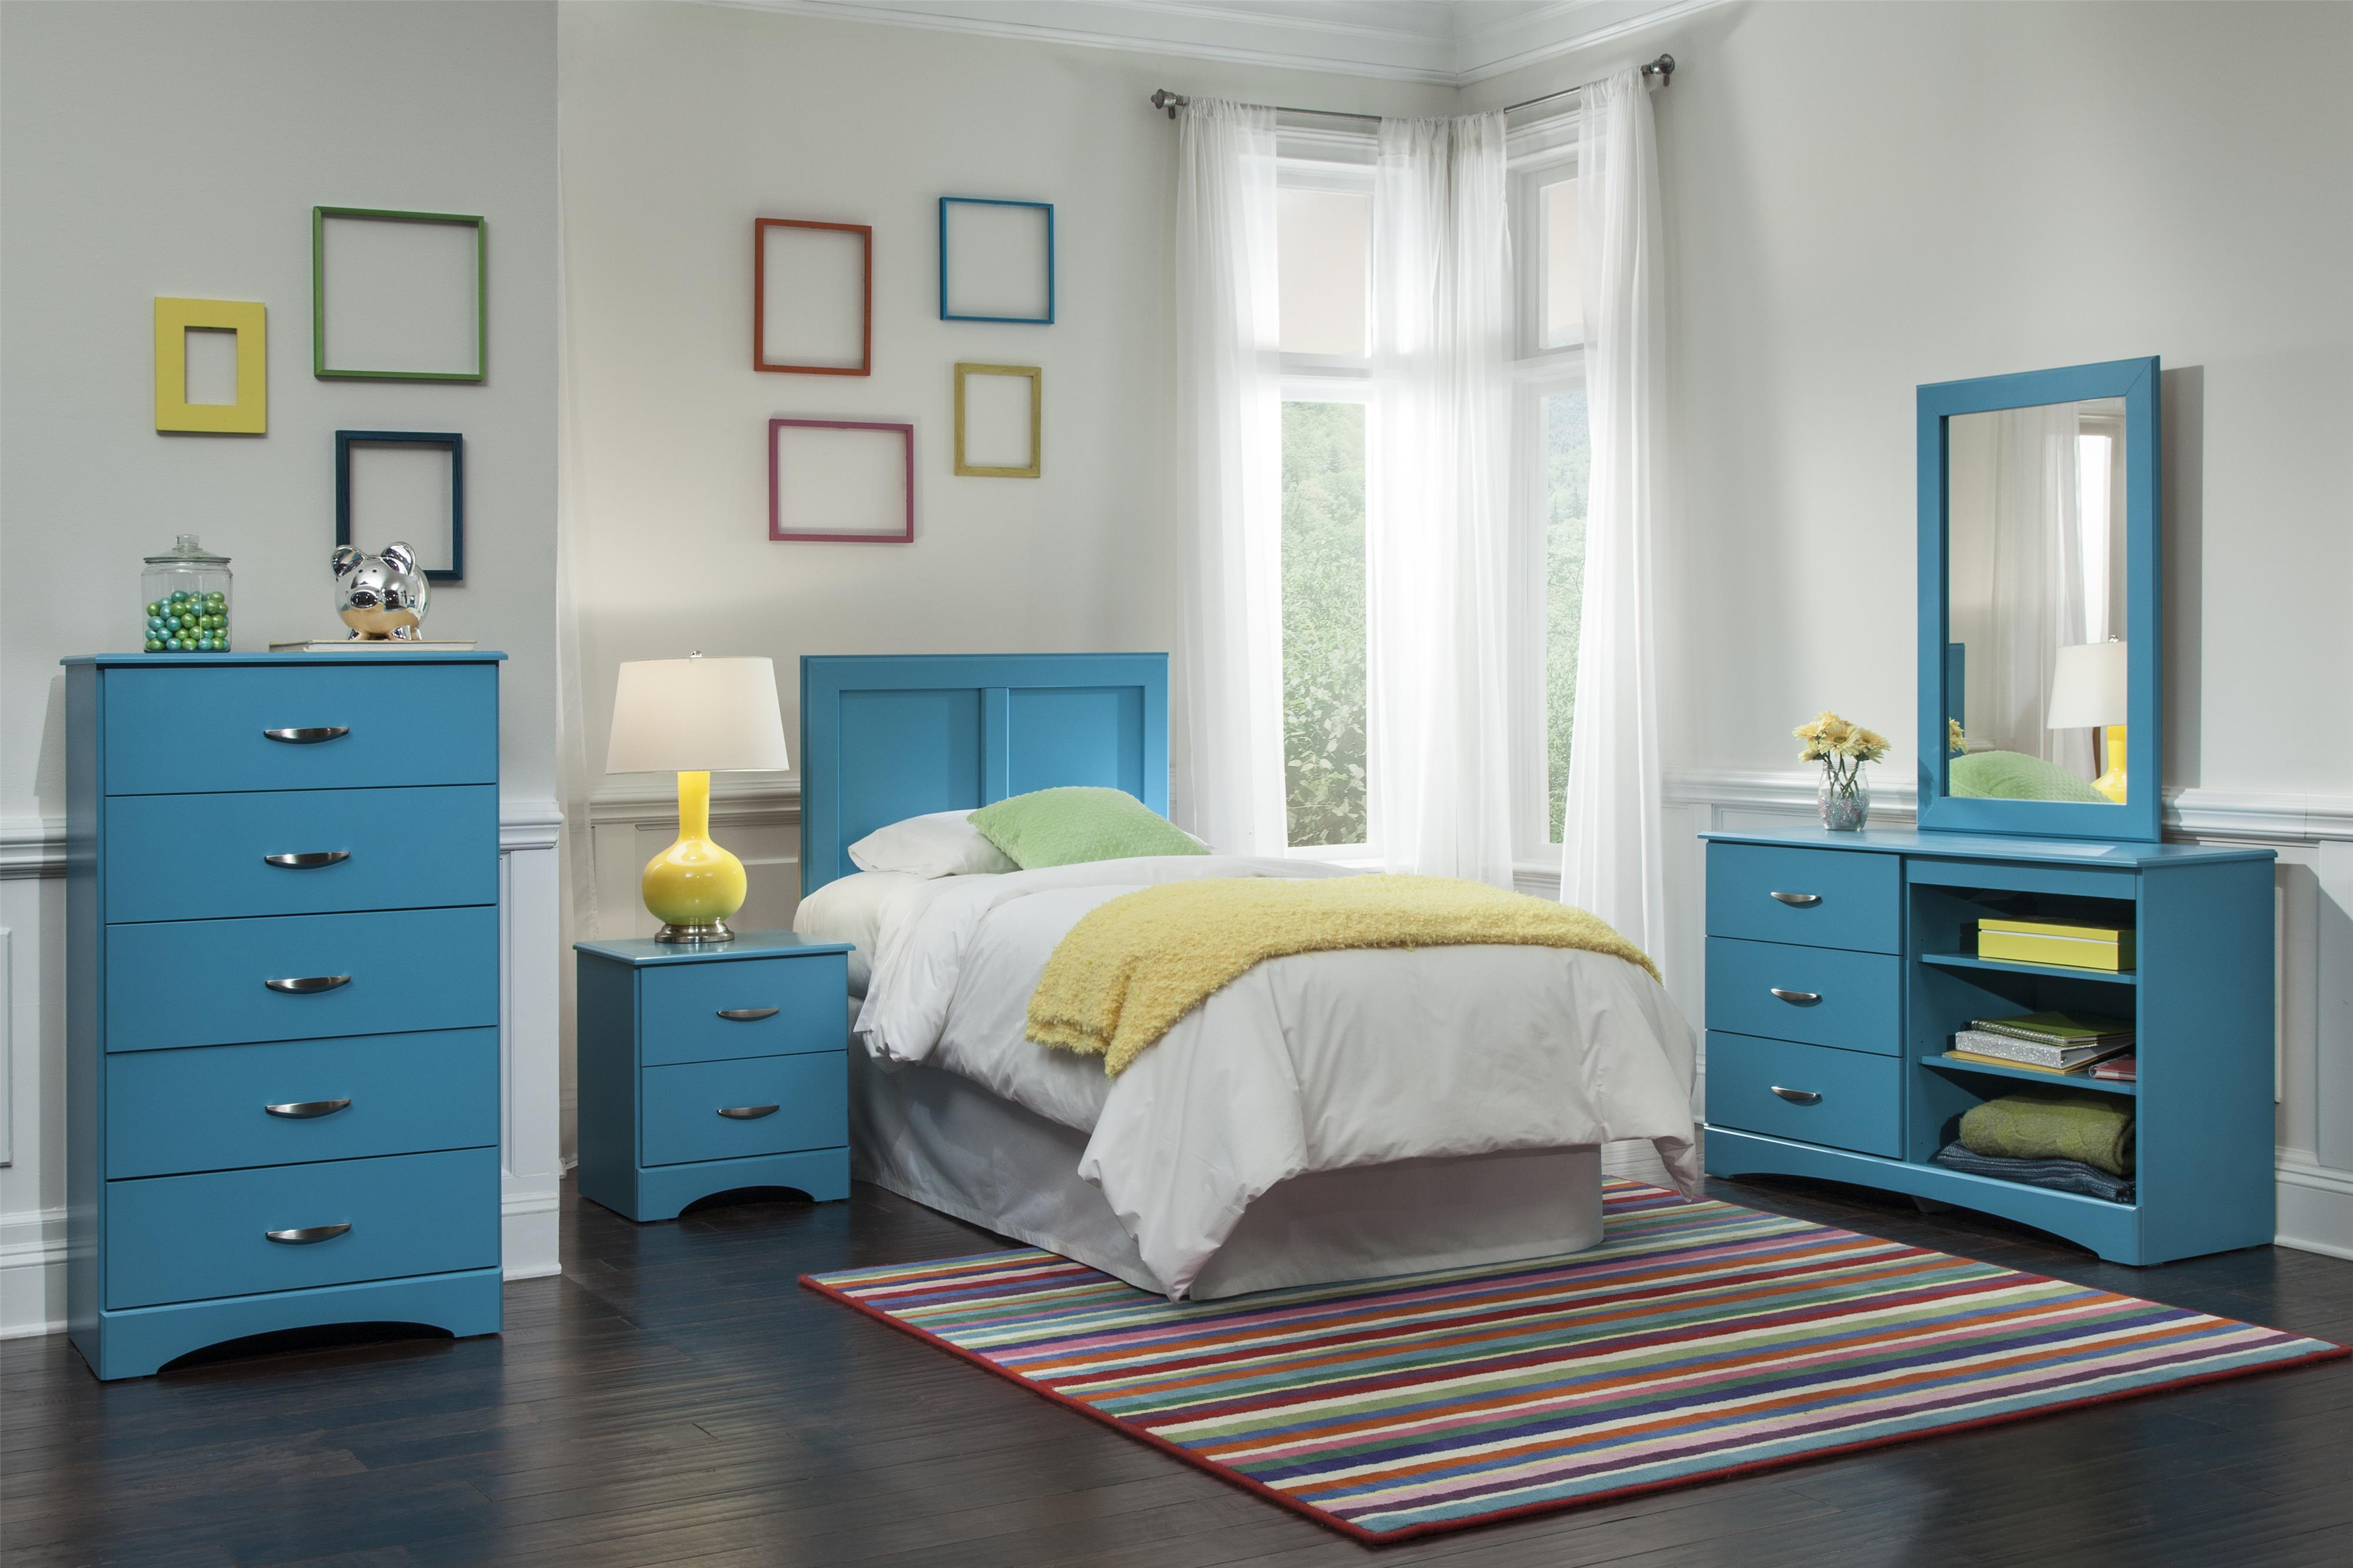 Kith Furniture 173 Turquoise Full Bedroom Group - Item Number: 173 F Bedroom Group 1